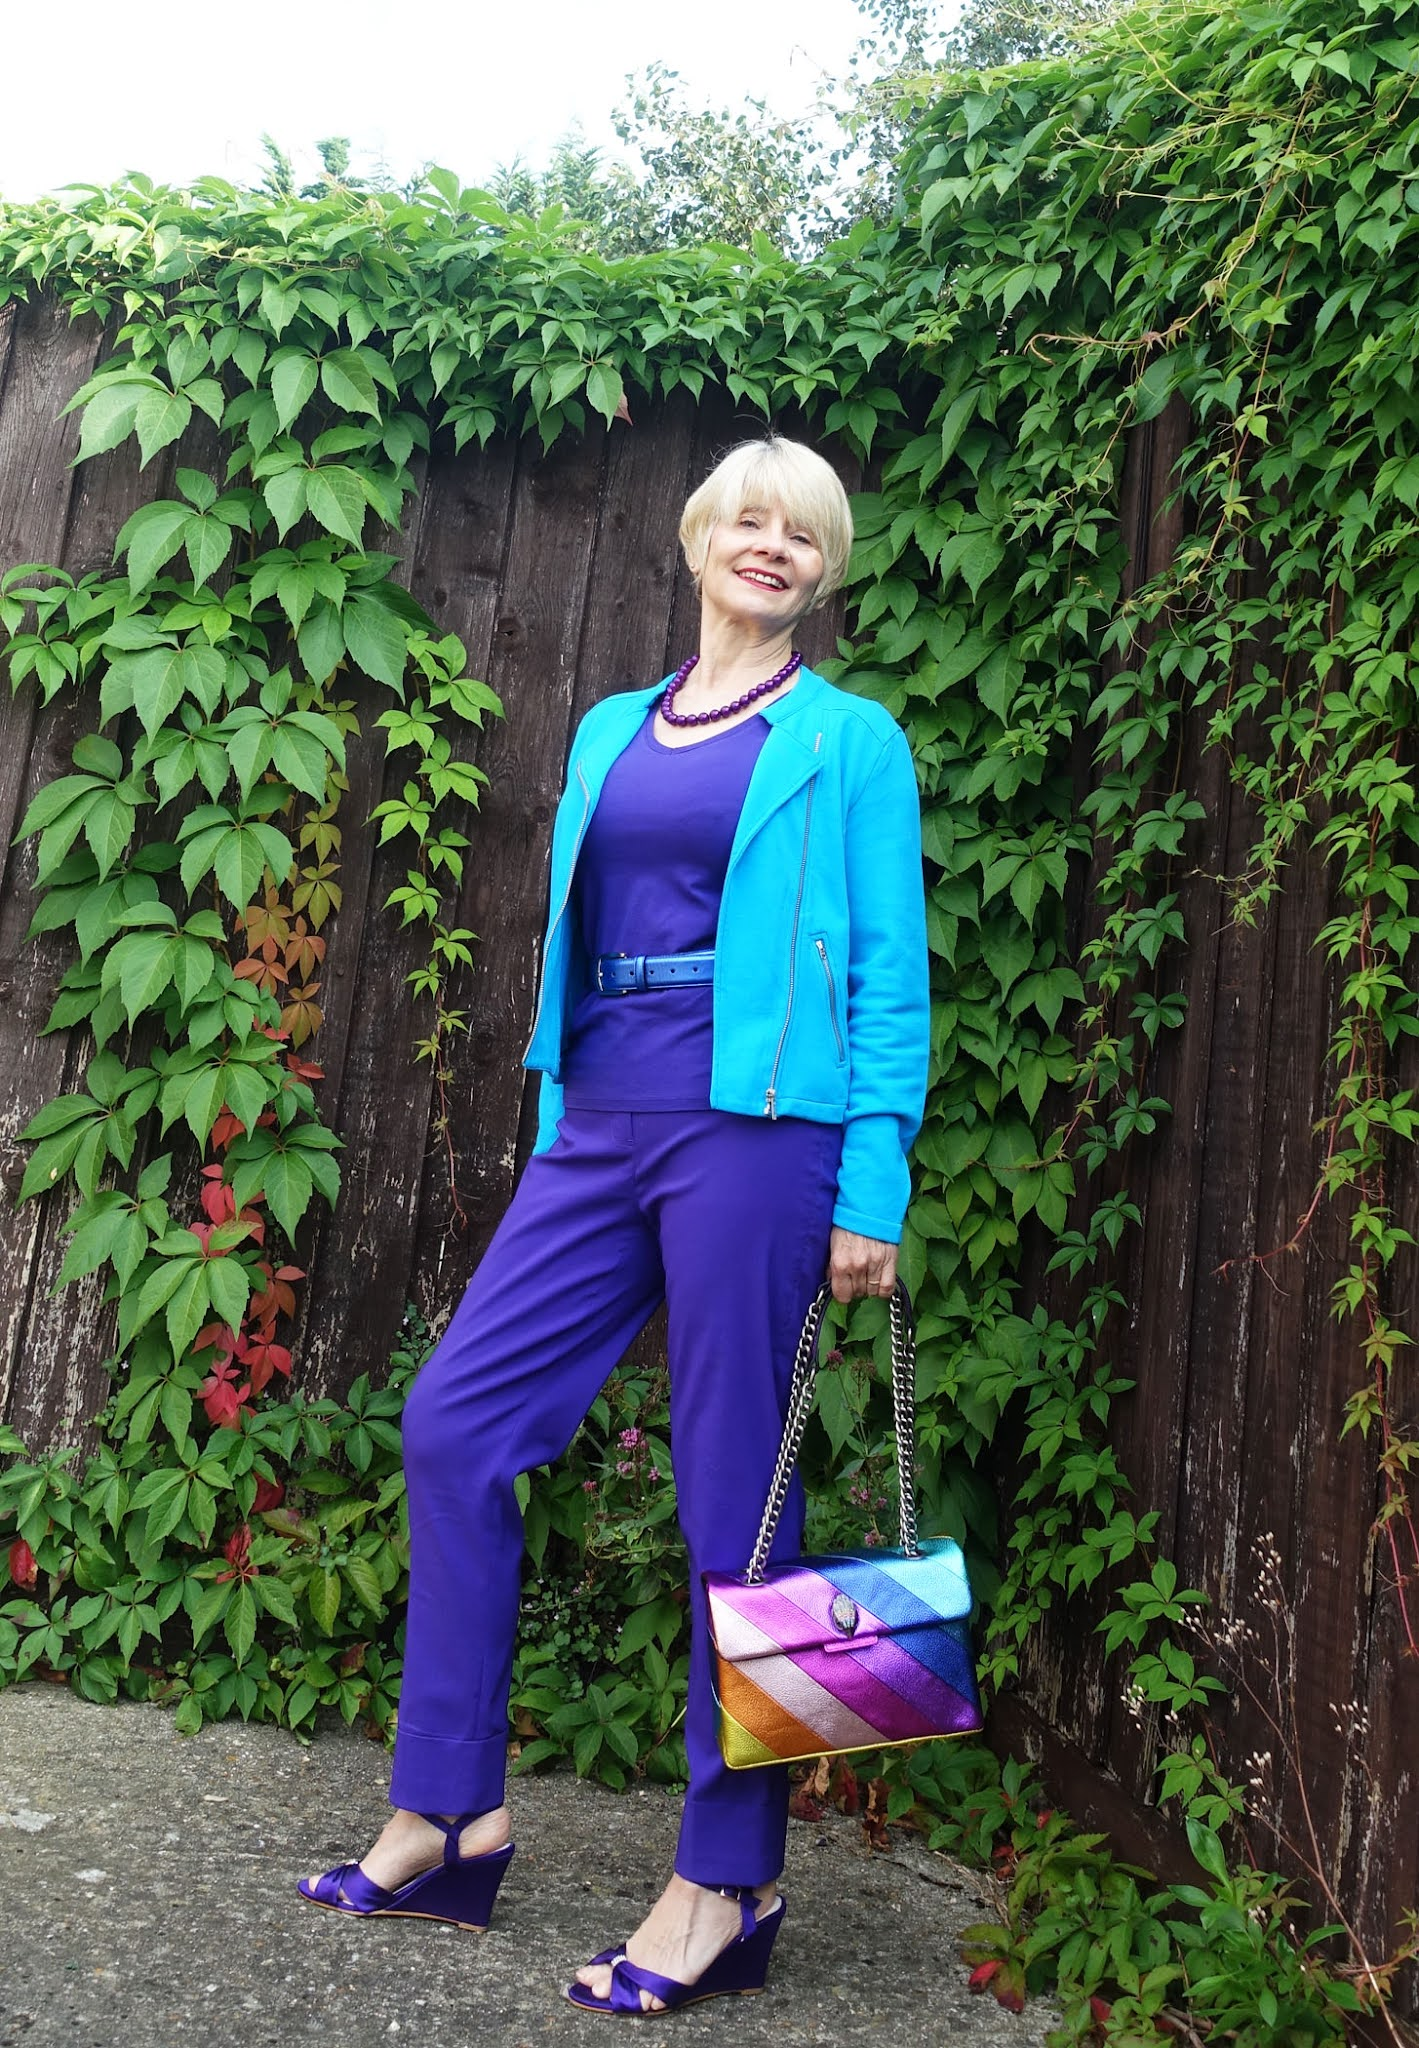 Over 50s style blogger Gail Hanlon in all purple with a bright blue jacket